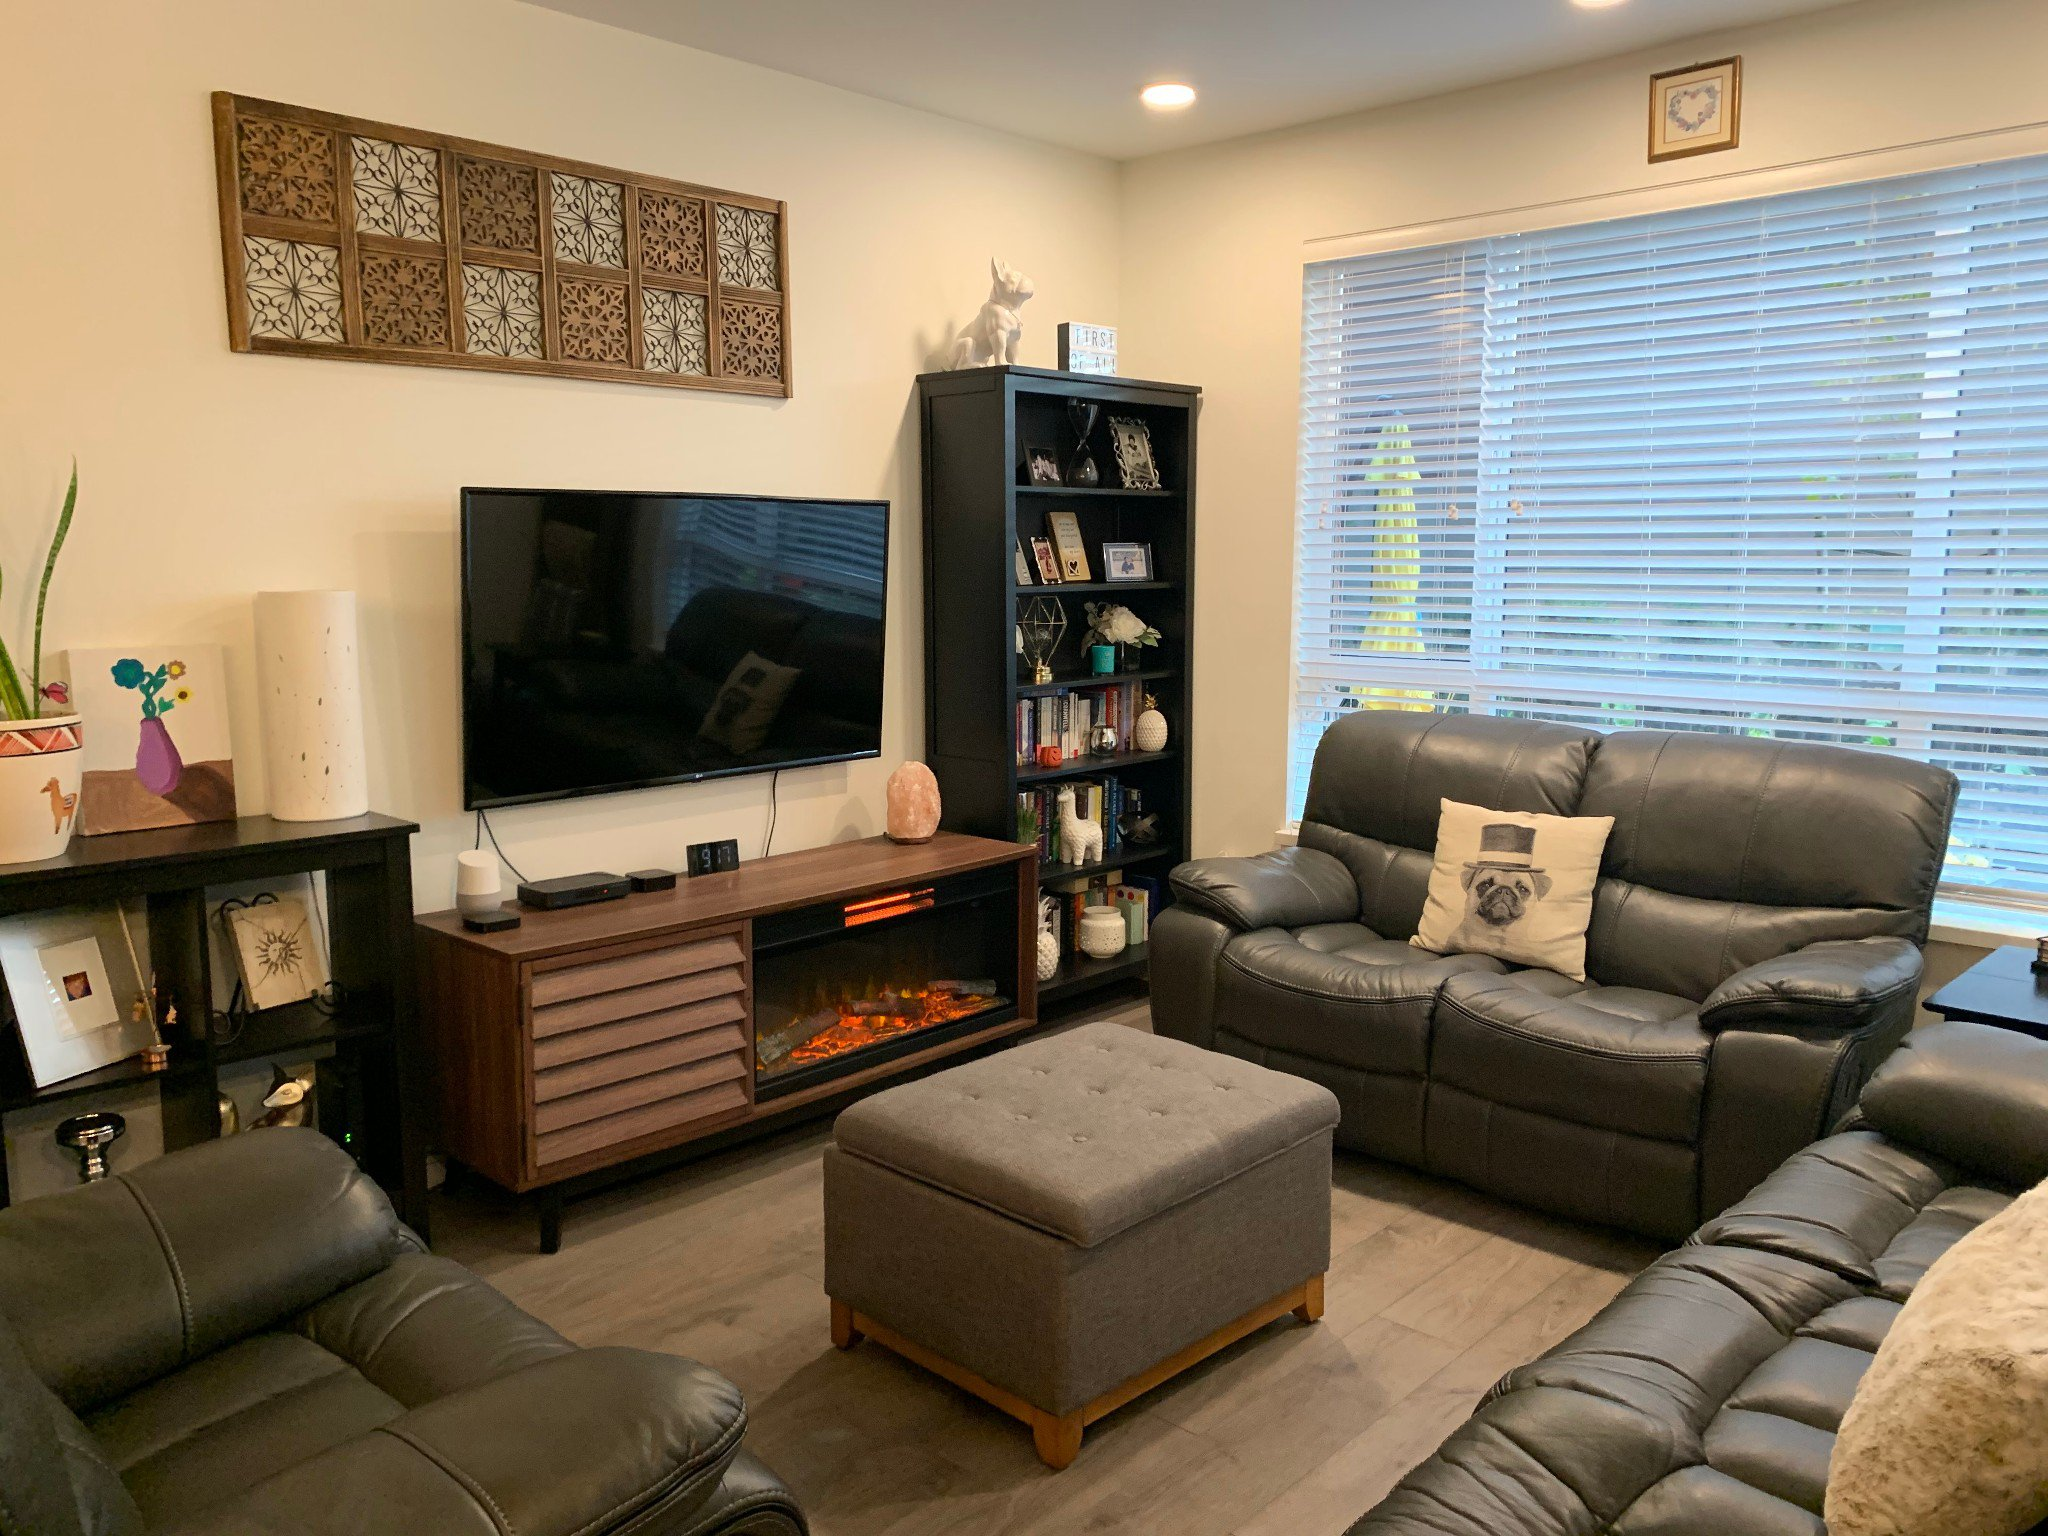 Photo 6: Photos: #108 33540 Mayfair Ave. in Abbotsford: Central Abbotsford Condo for rent